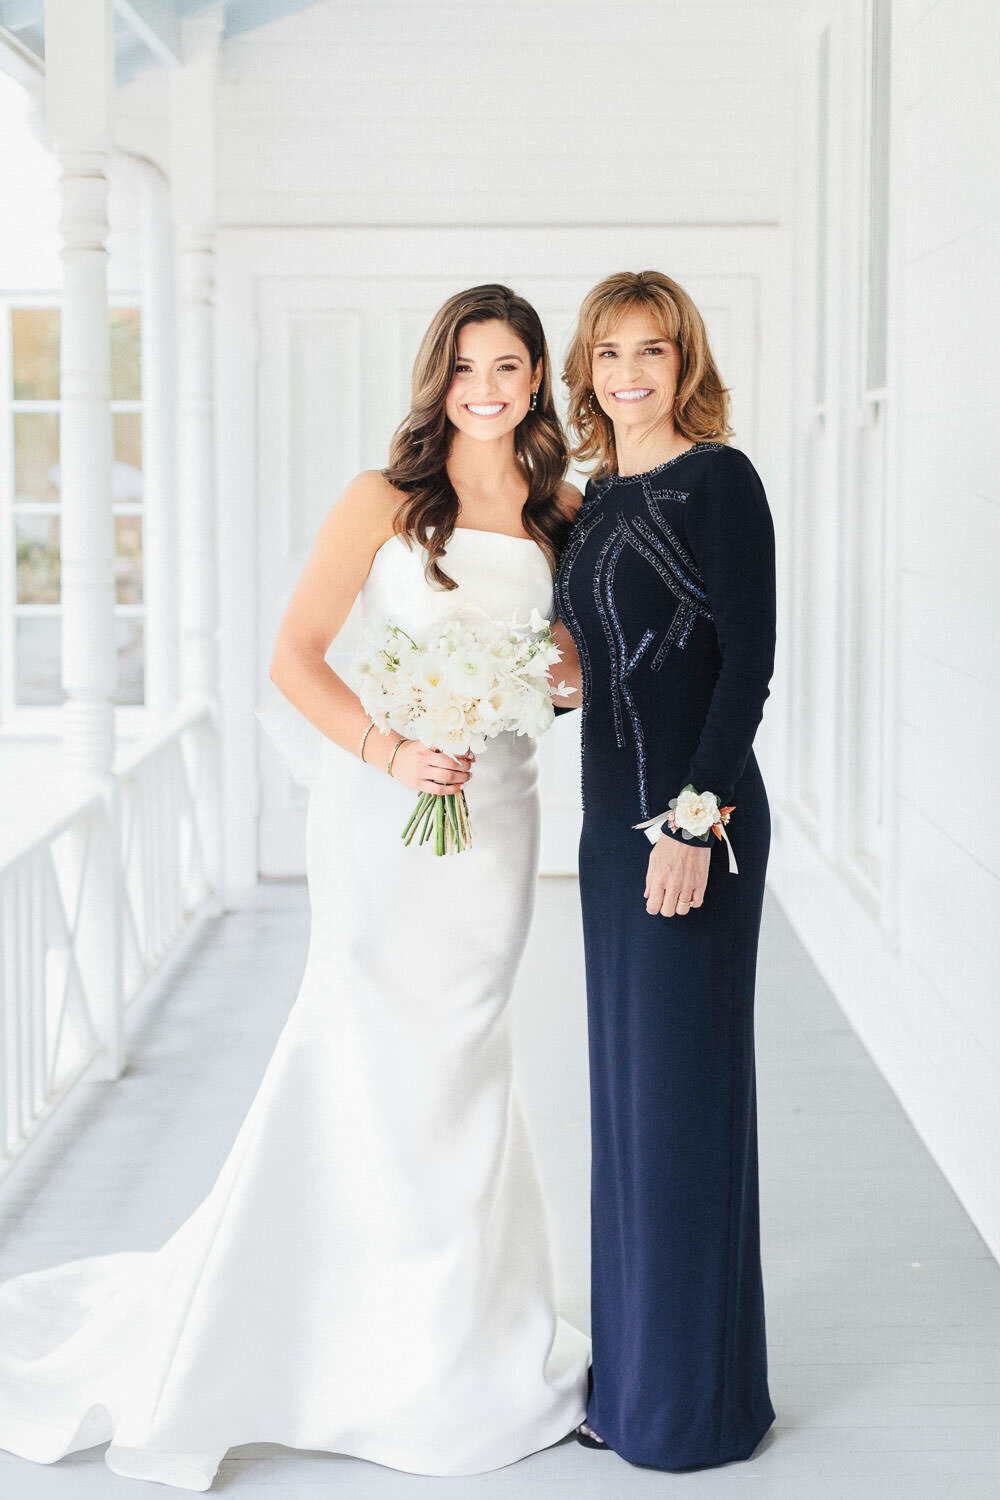 bride and mother in white wedding dress and blue gown posing for photo